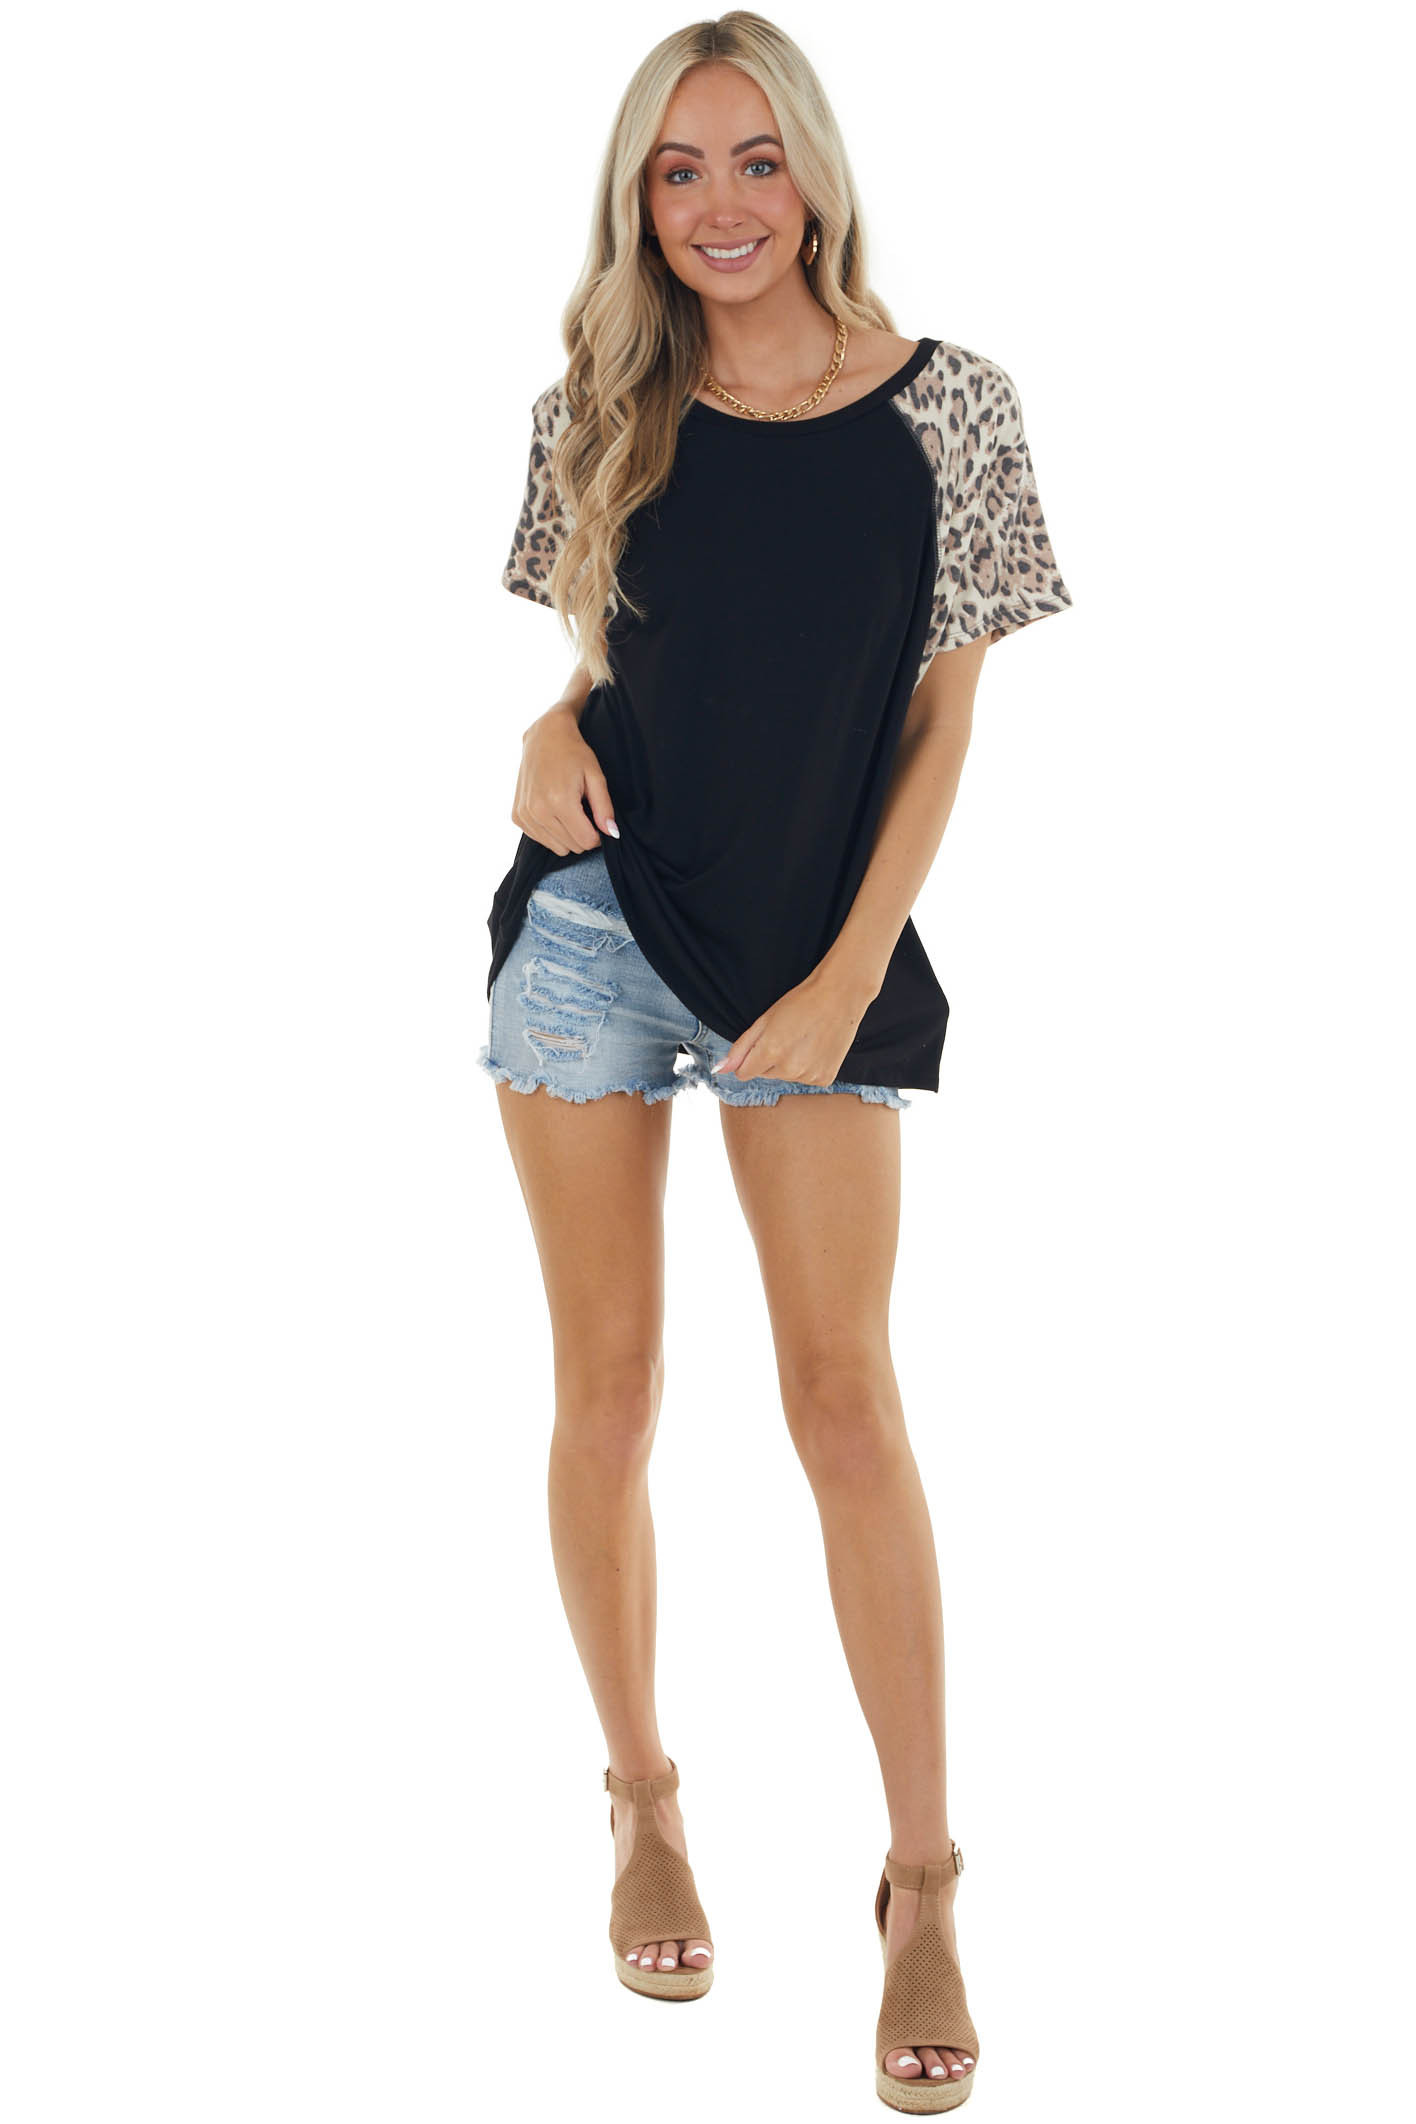 Black Top with Contrasting Leopard Sleeves